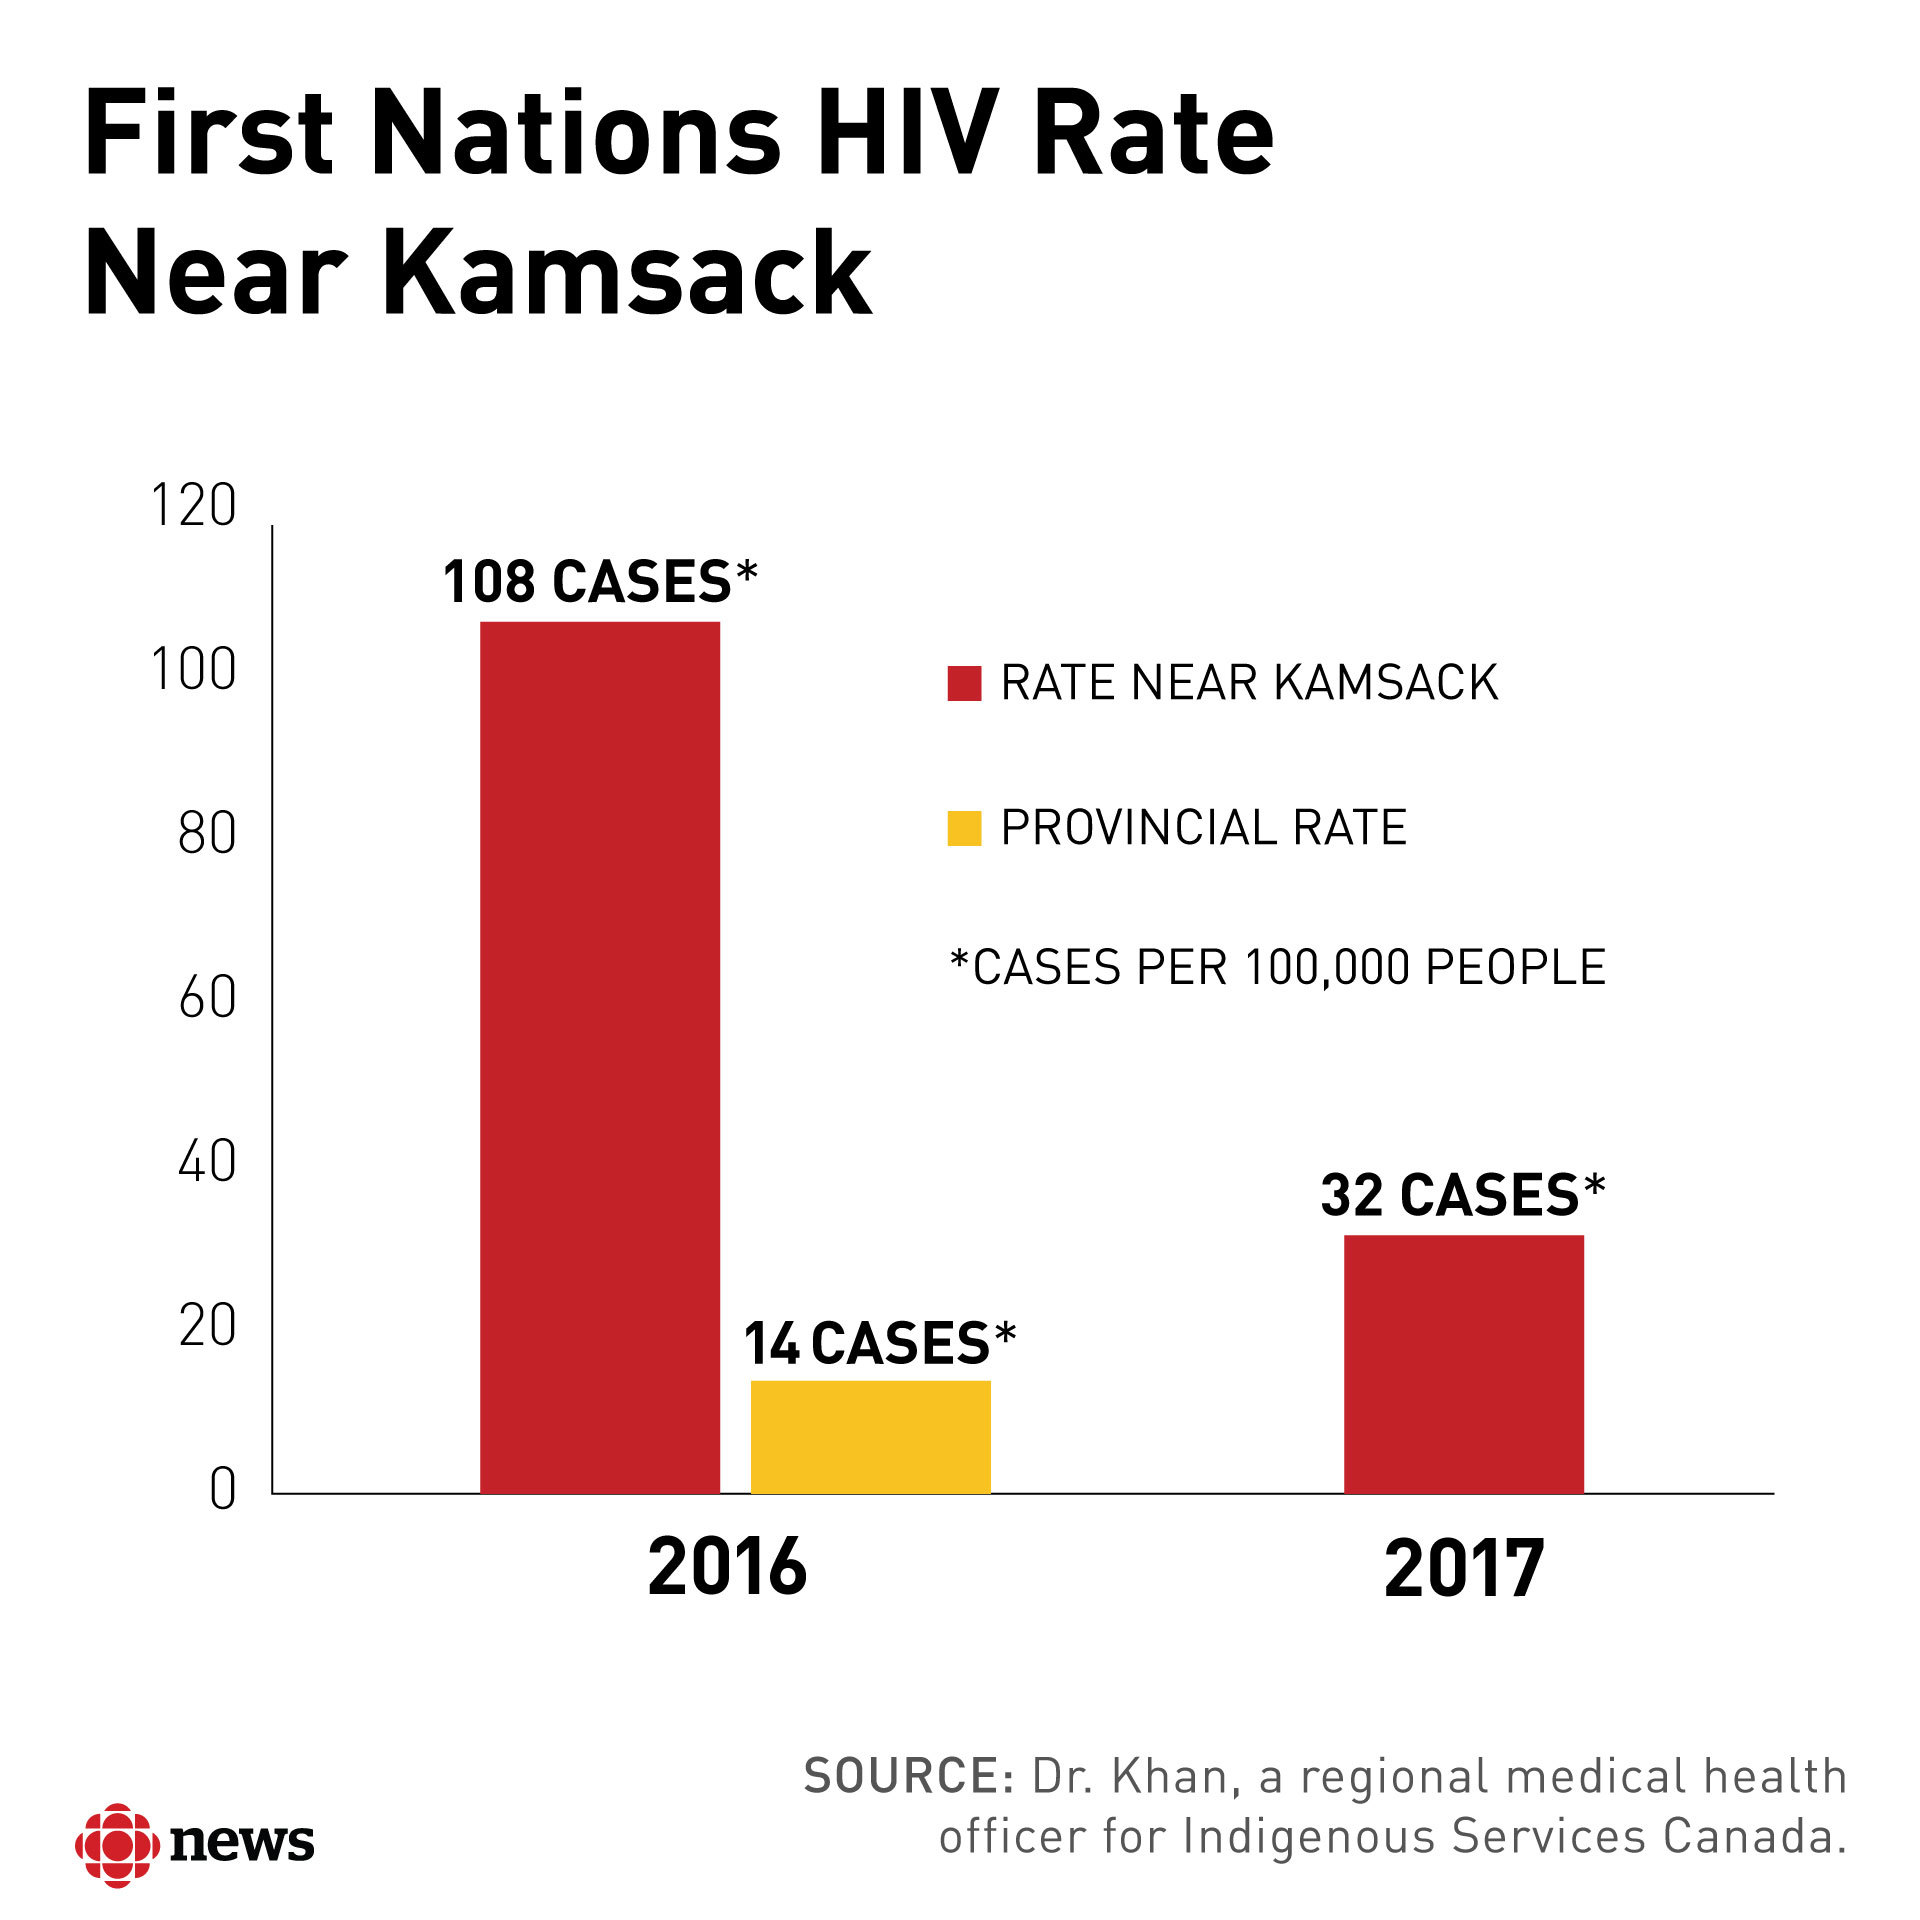 Health officials co-ordinated a rapid response to the HIV crisis on southern Saskatchewan reserves, and continue to expand HIV education and treatment for the sake of prevention.